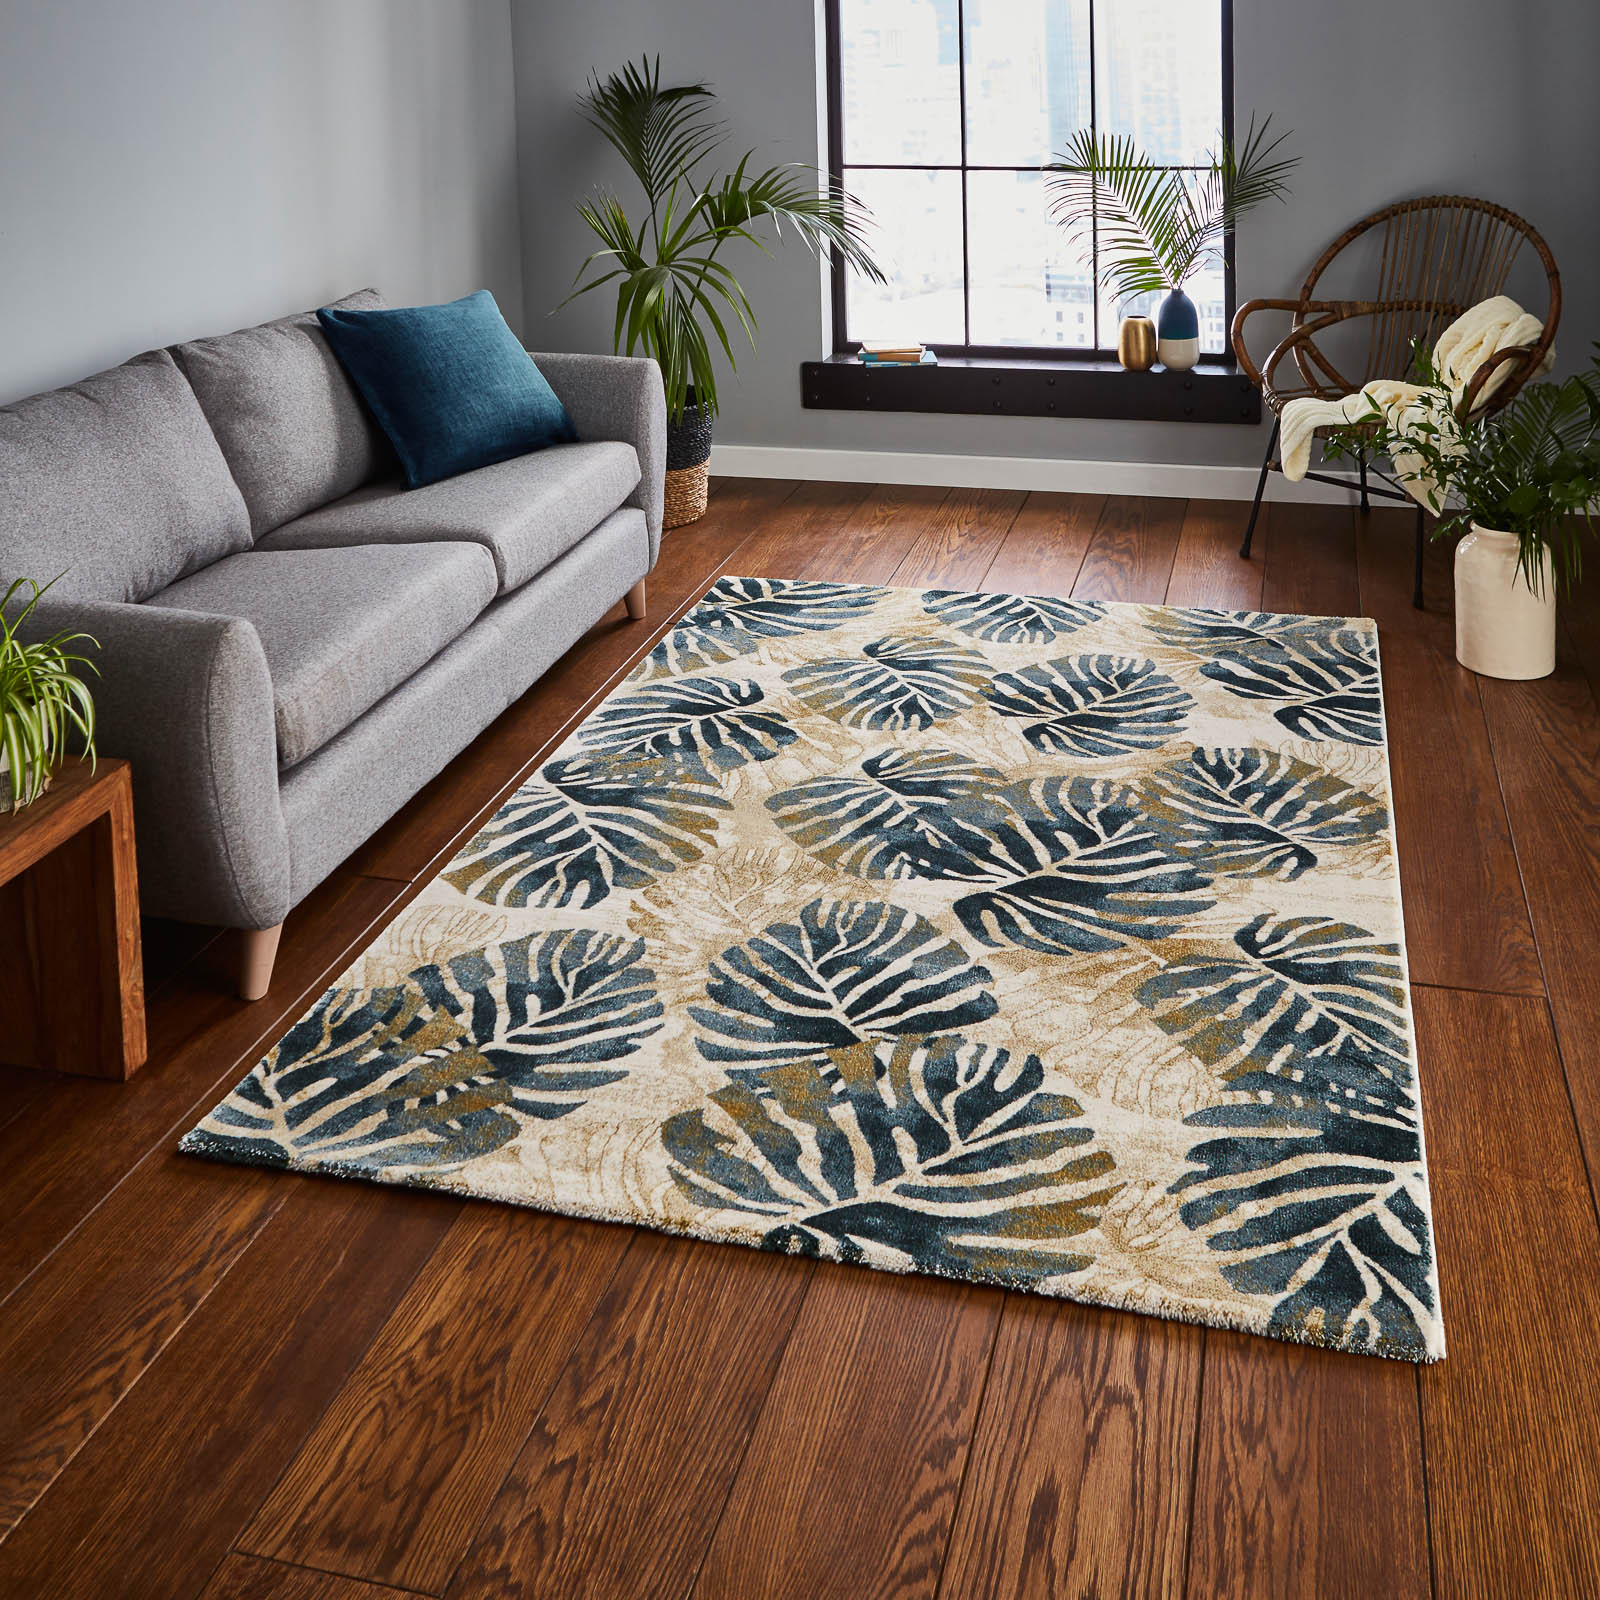 Mother's Day gift, Tropics Rugs 6097 in Cream and Blue